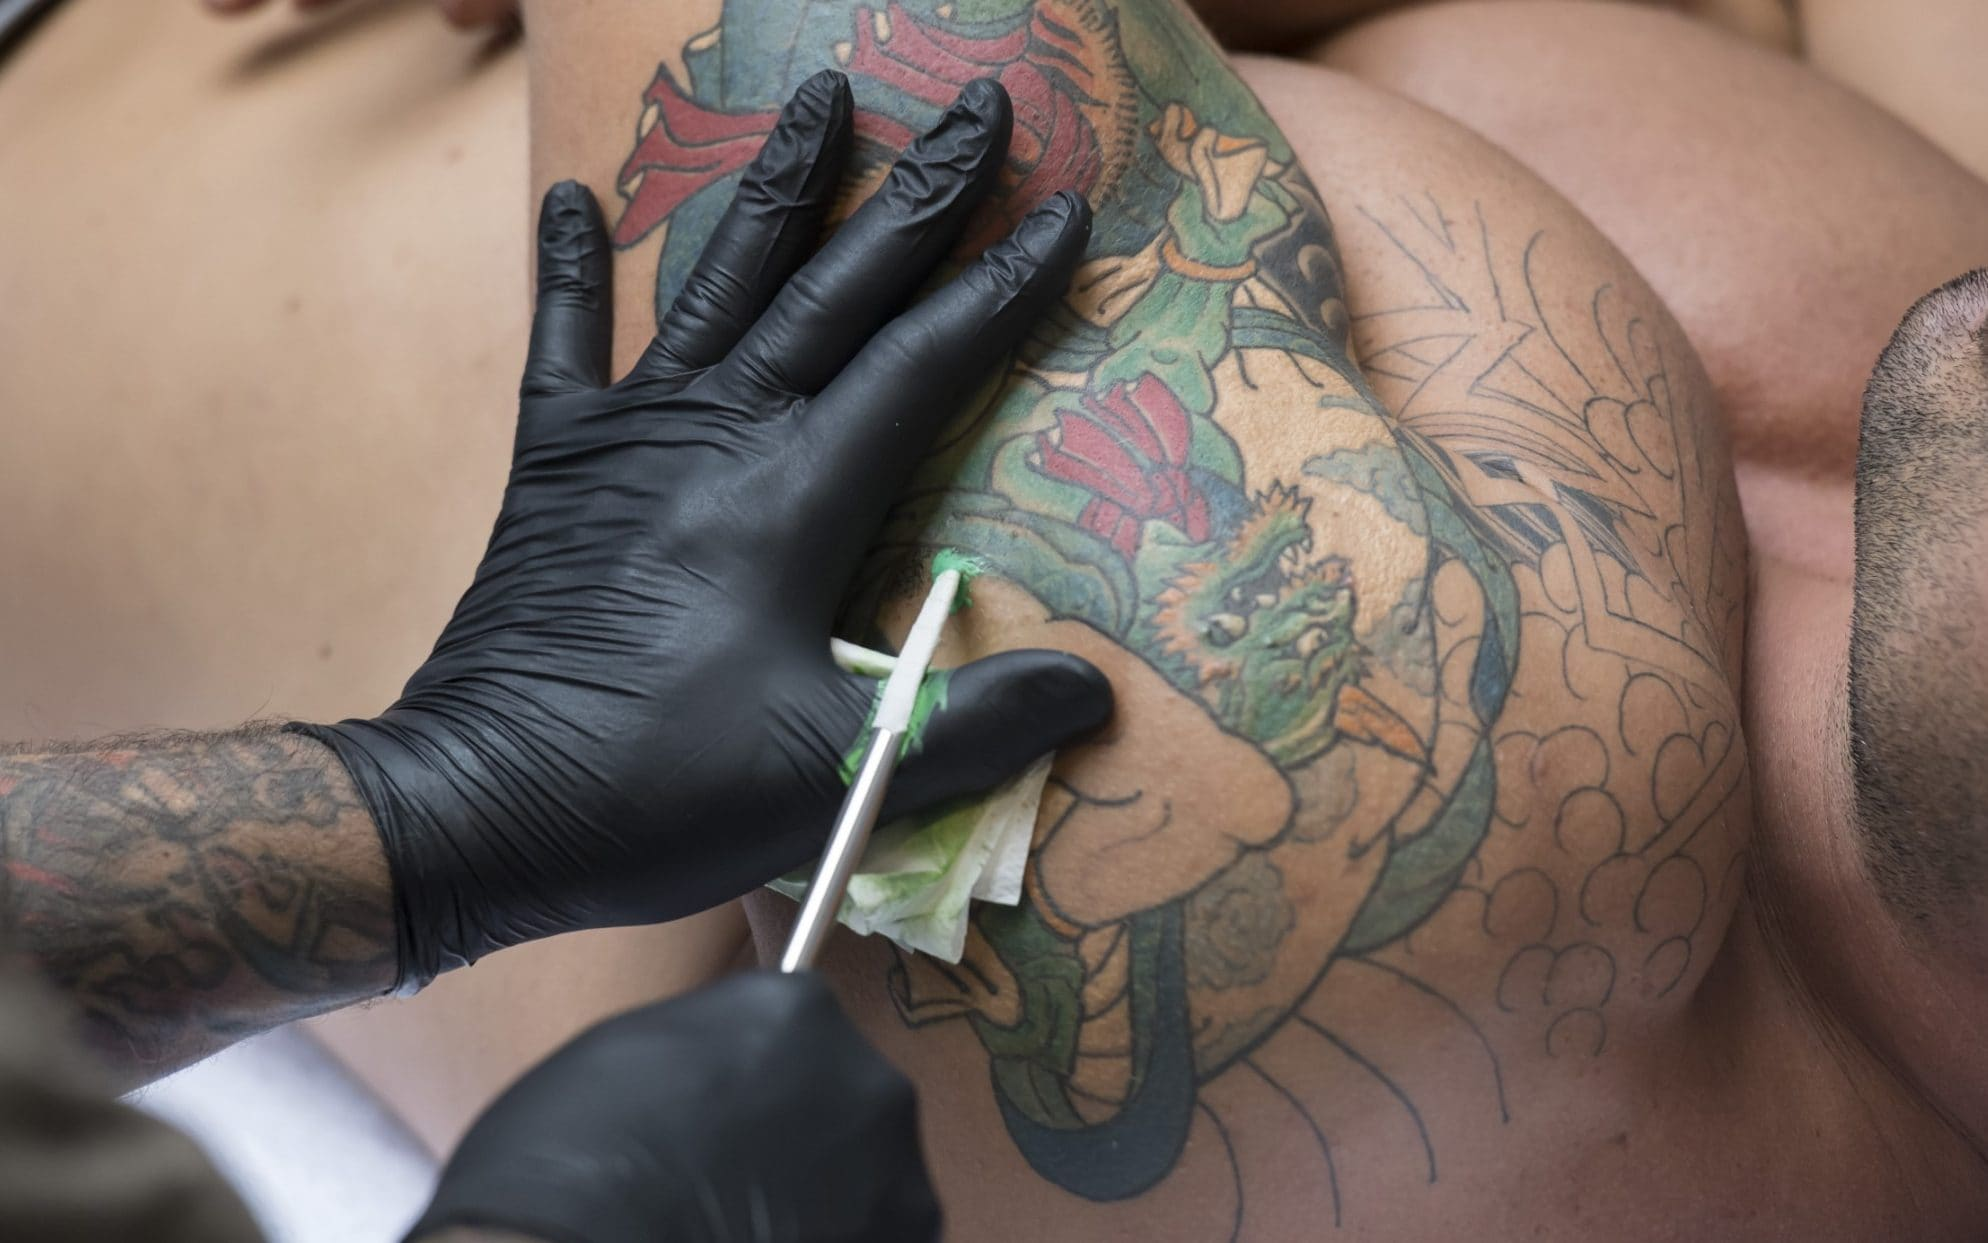 tattoos can cause infections